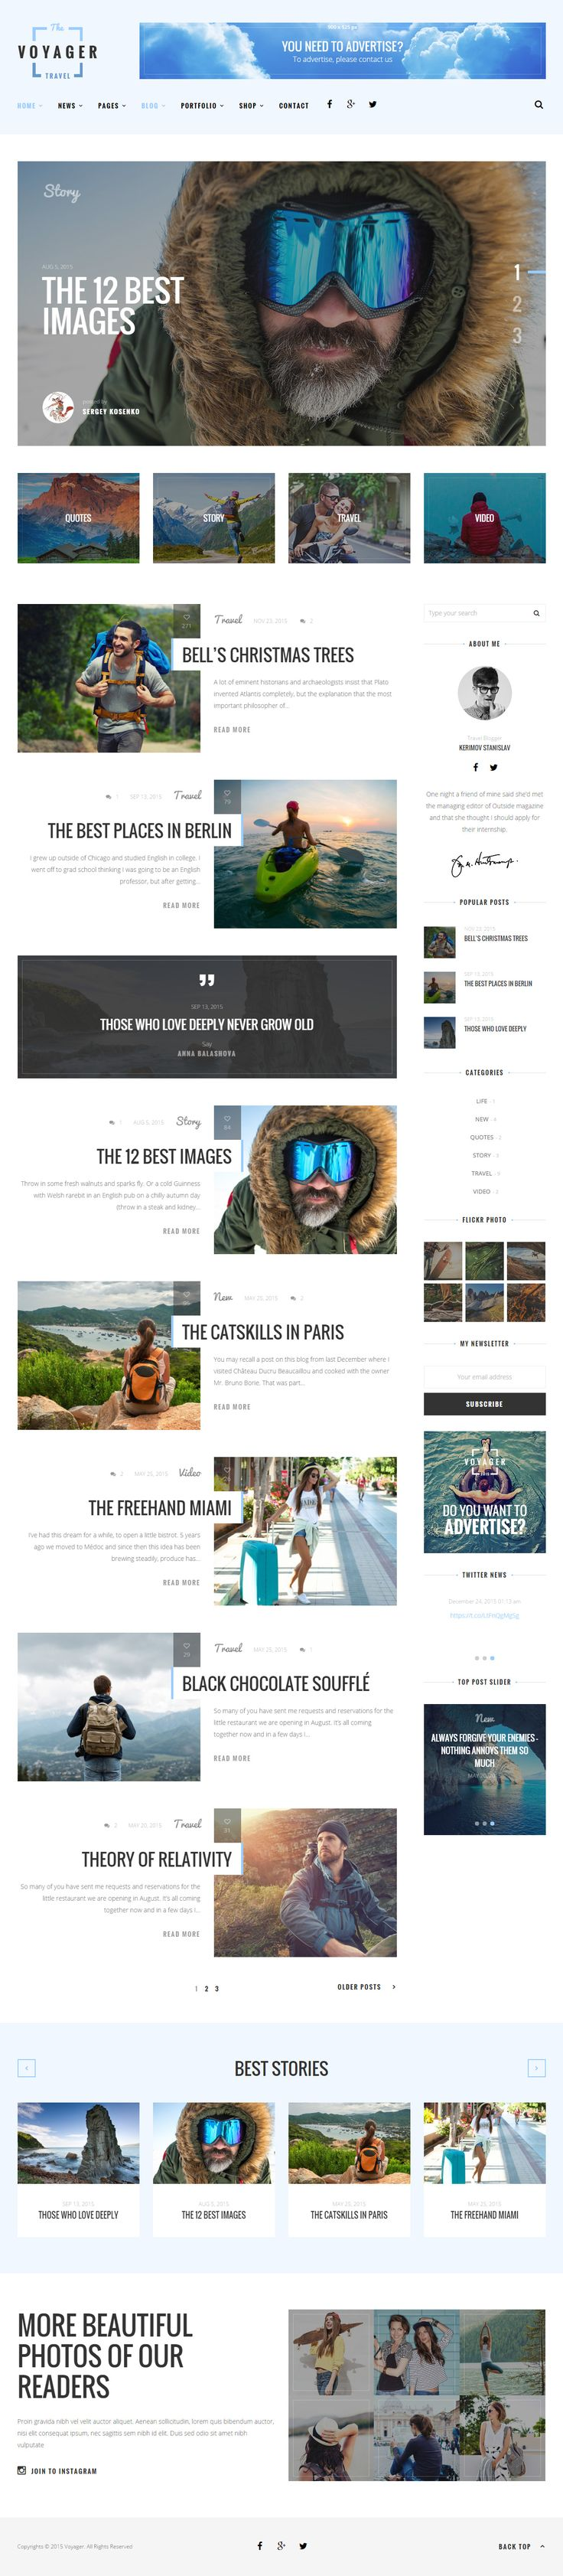 6321 besten Wordpress Theme Bilder auf Pinterest | Wordpress theme ...